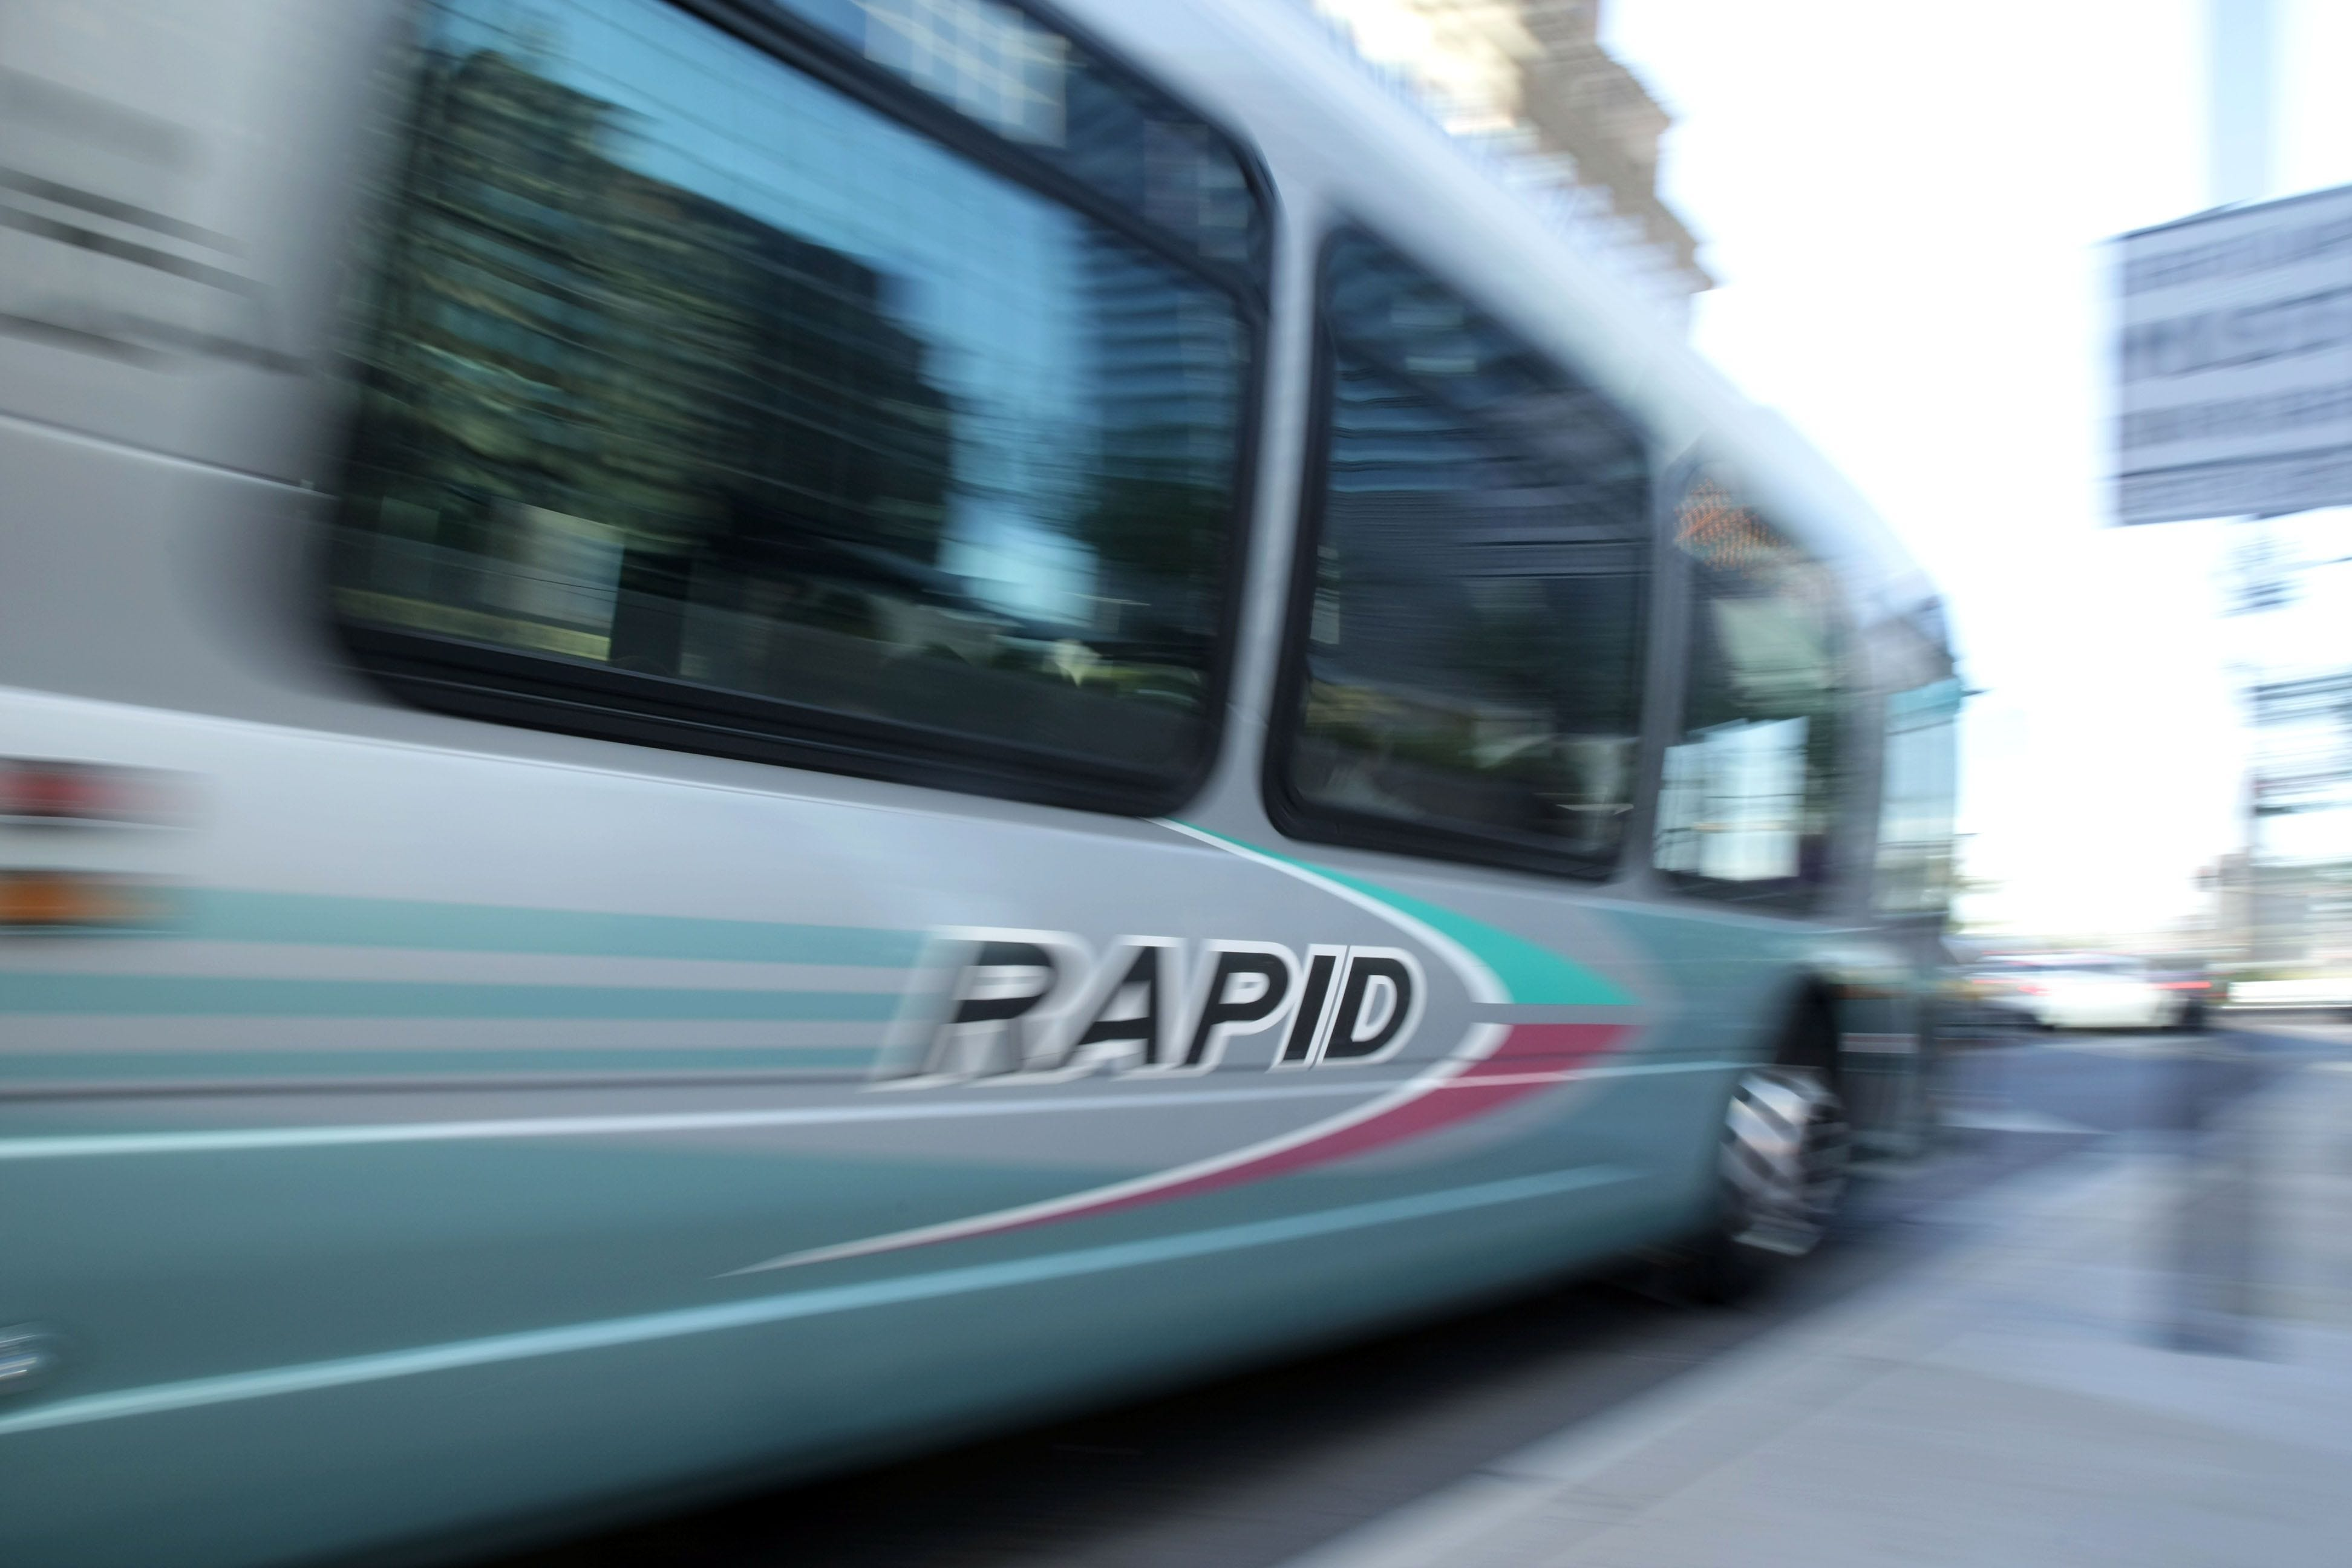 Bus Rapid Transit operates like light rail without the track. It has fewer stops than a traditional bus (typicallyevery half-mile),stations where riderspay their fare before the bus arrives,signal priority and sometimes a dedicated lane.